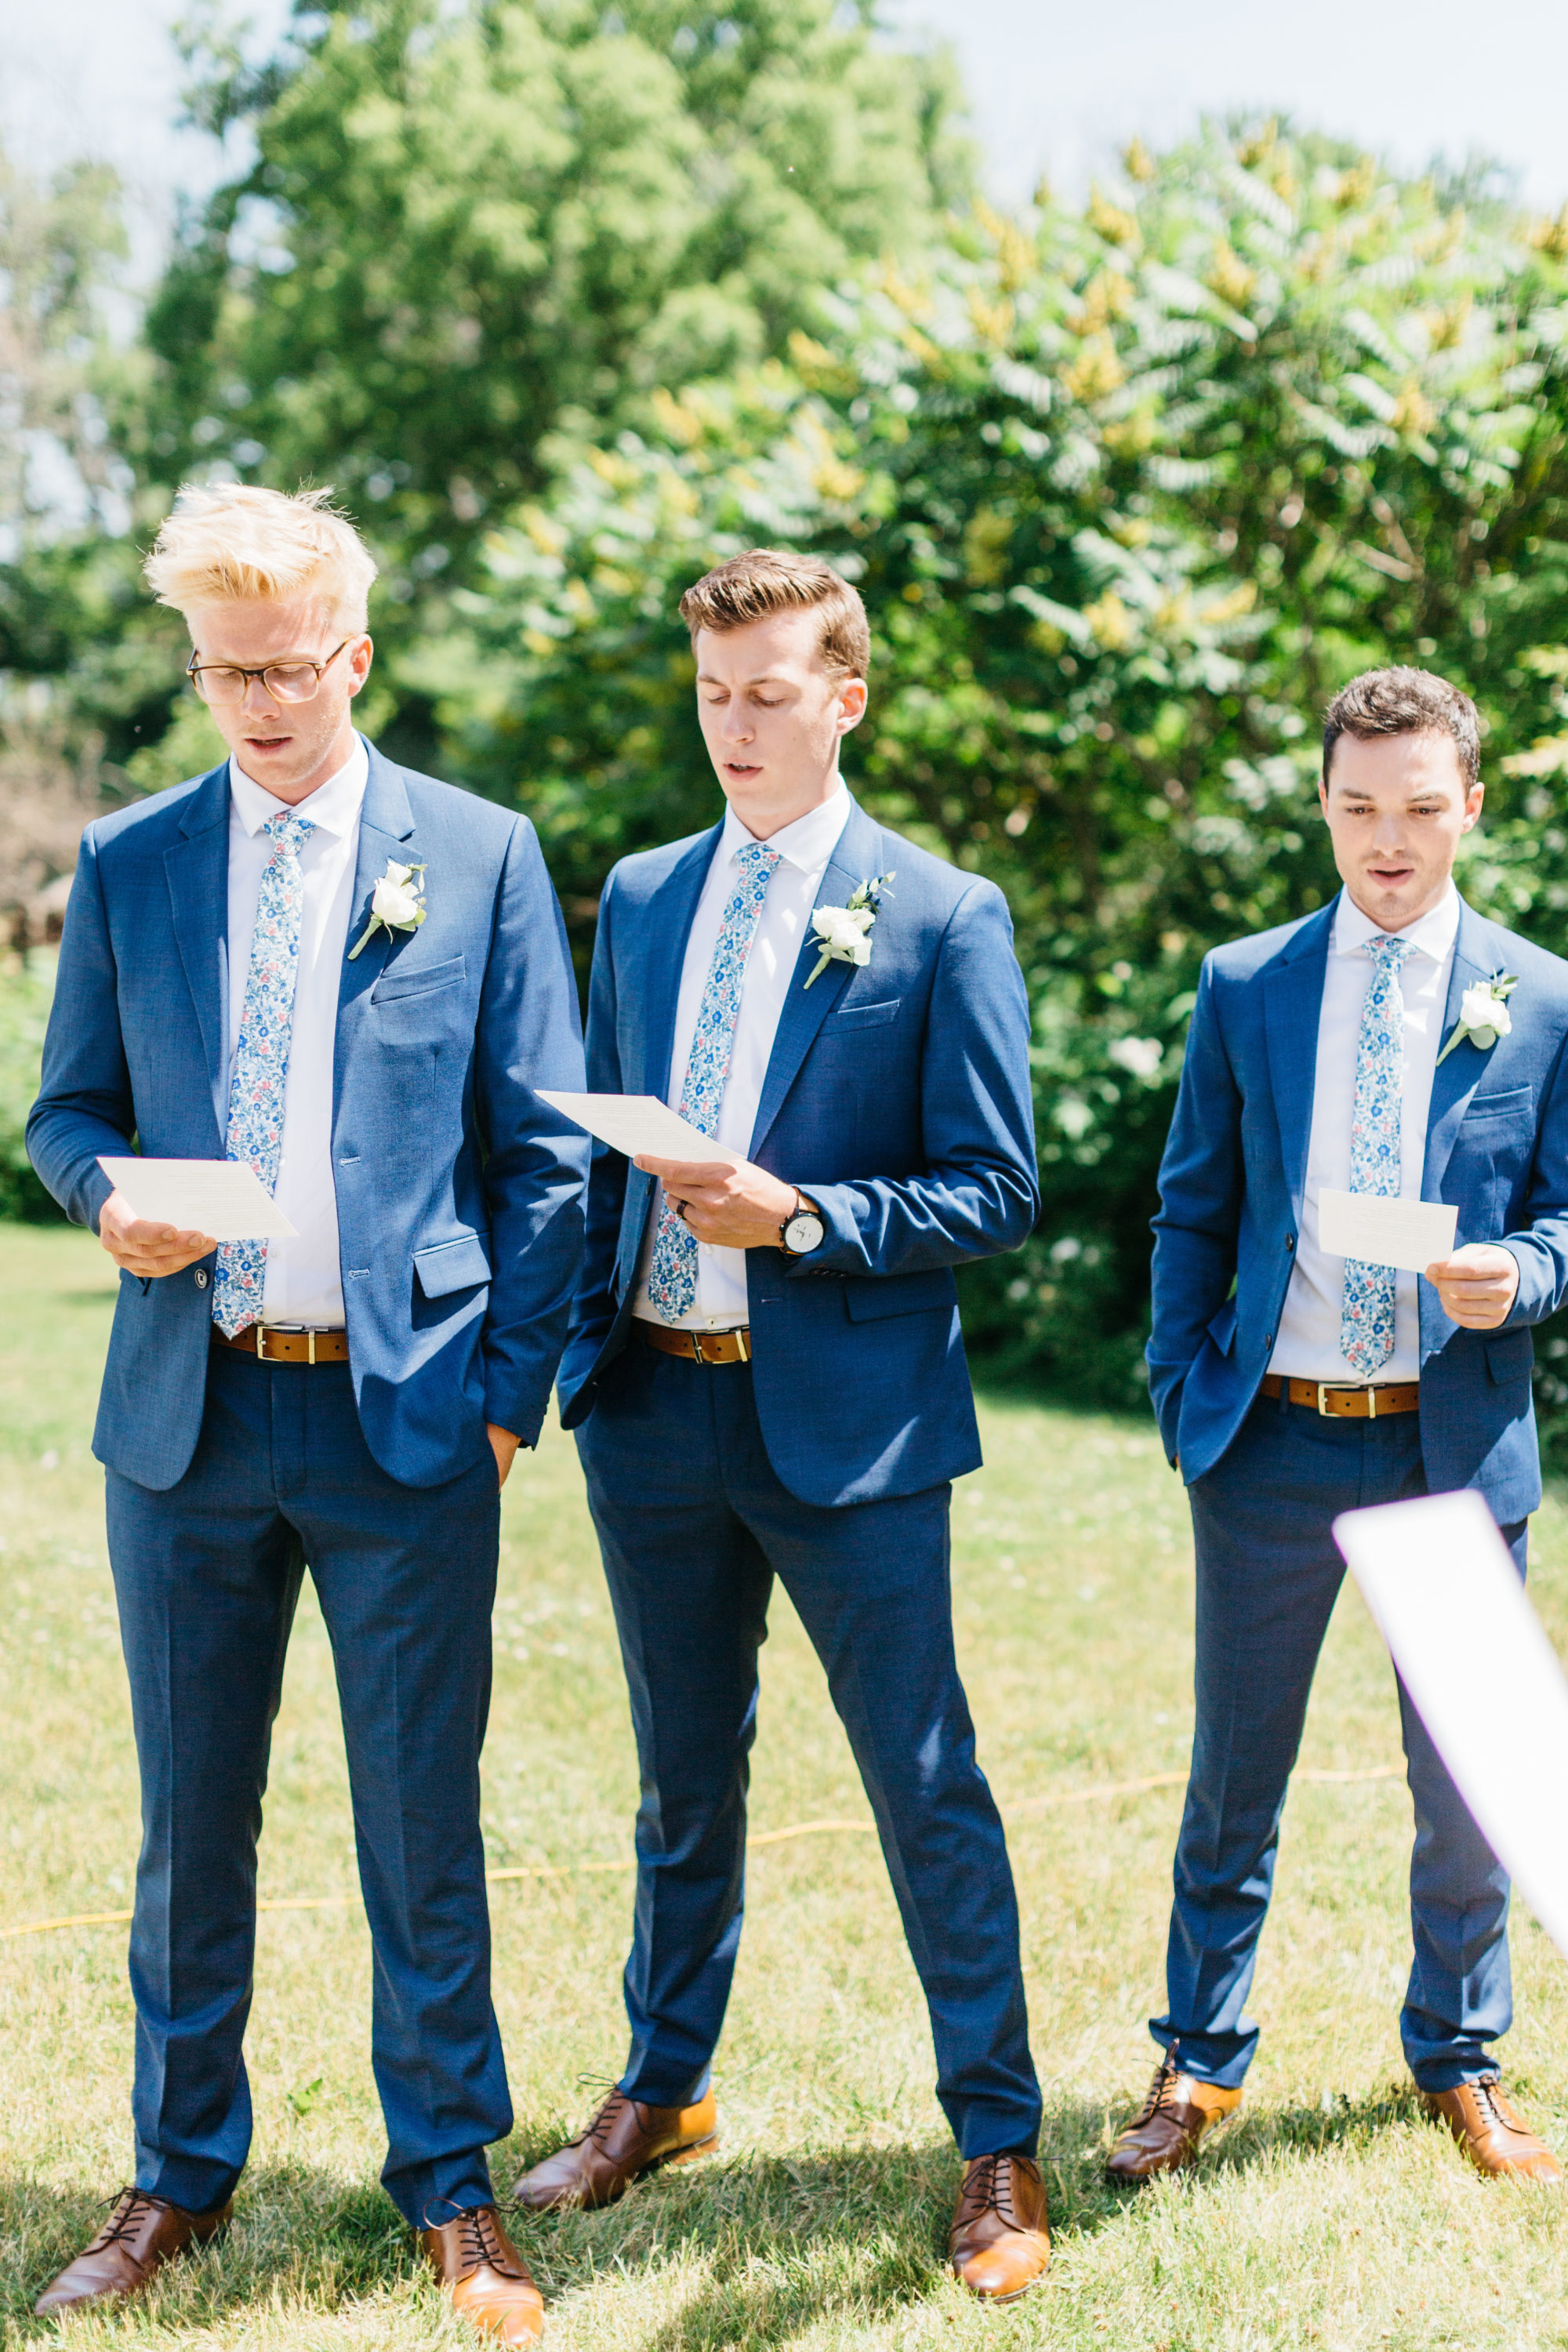 Groomsmen singing during ceremony